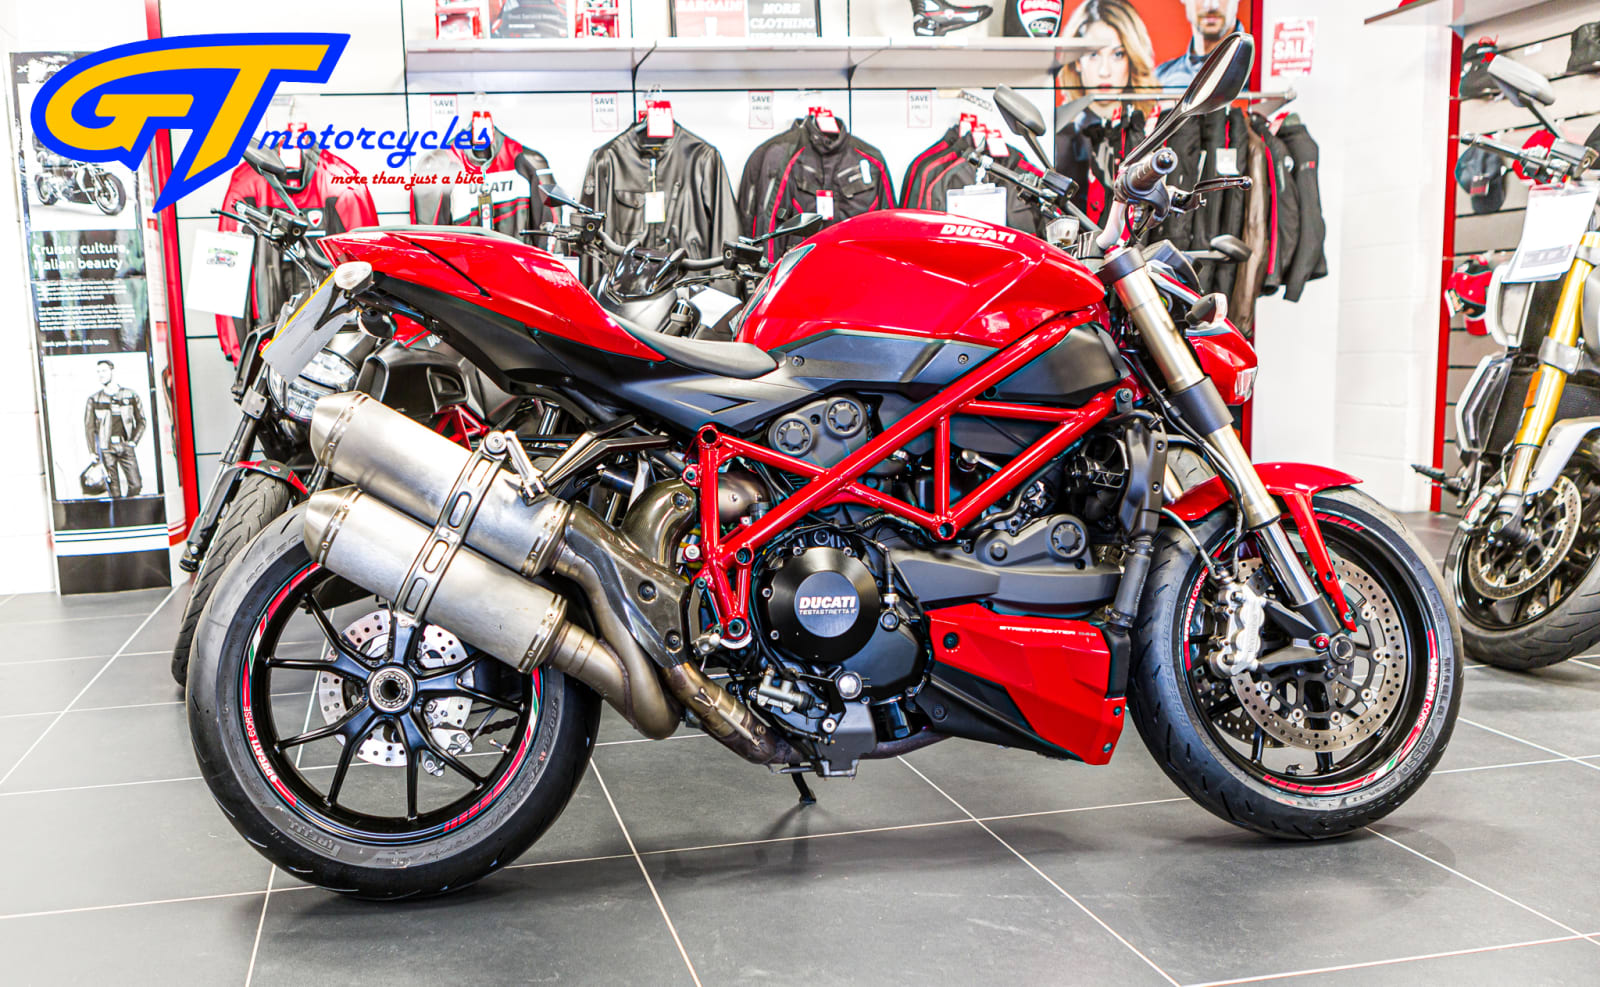 picture of a Ducati Streetfighter 848